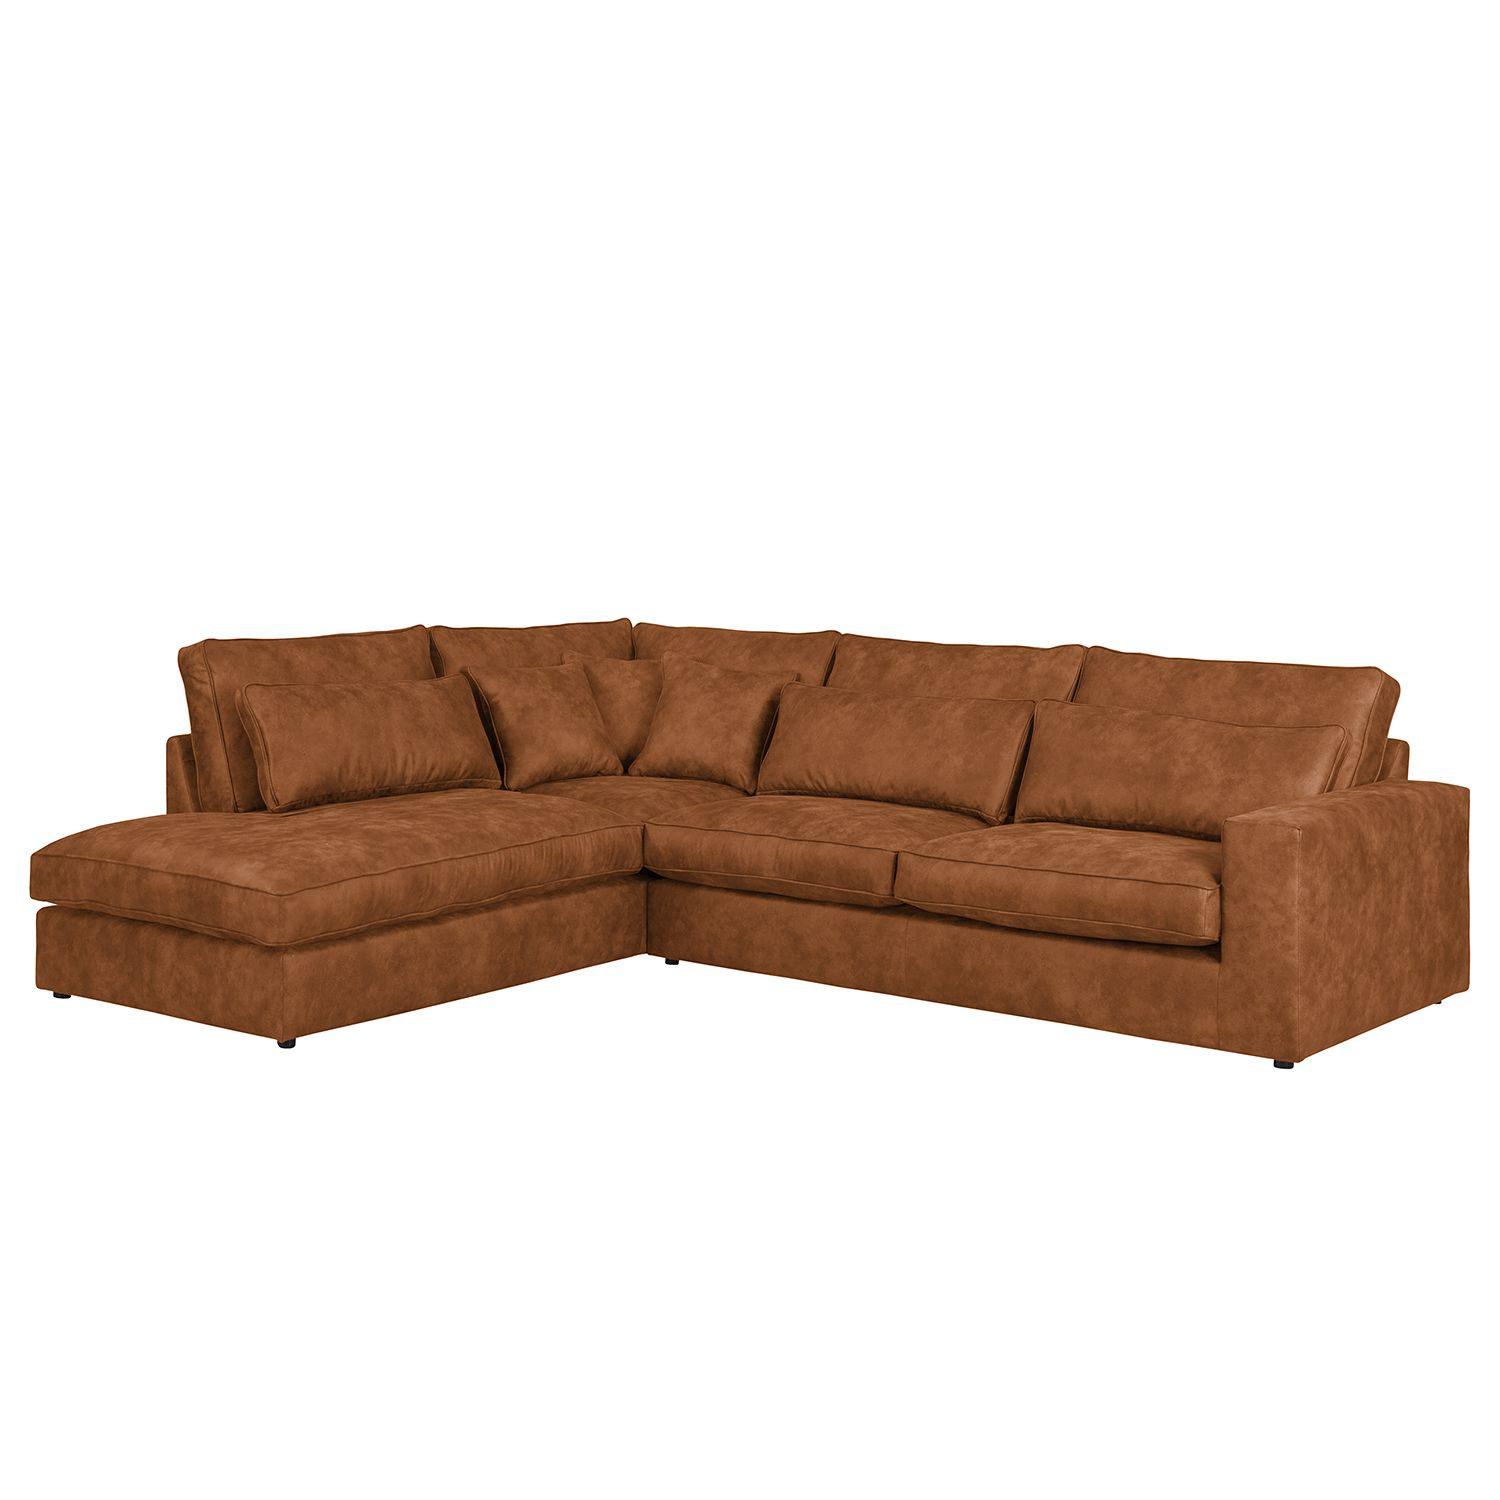 home24 Ecksofa Coolock Antiklederlook